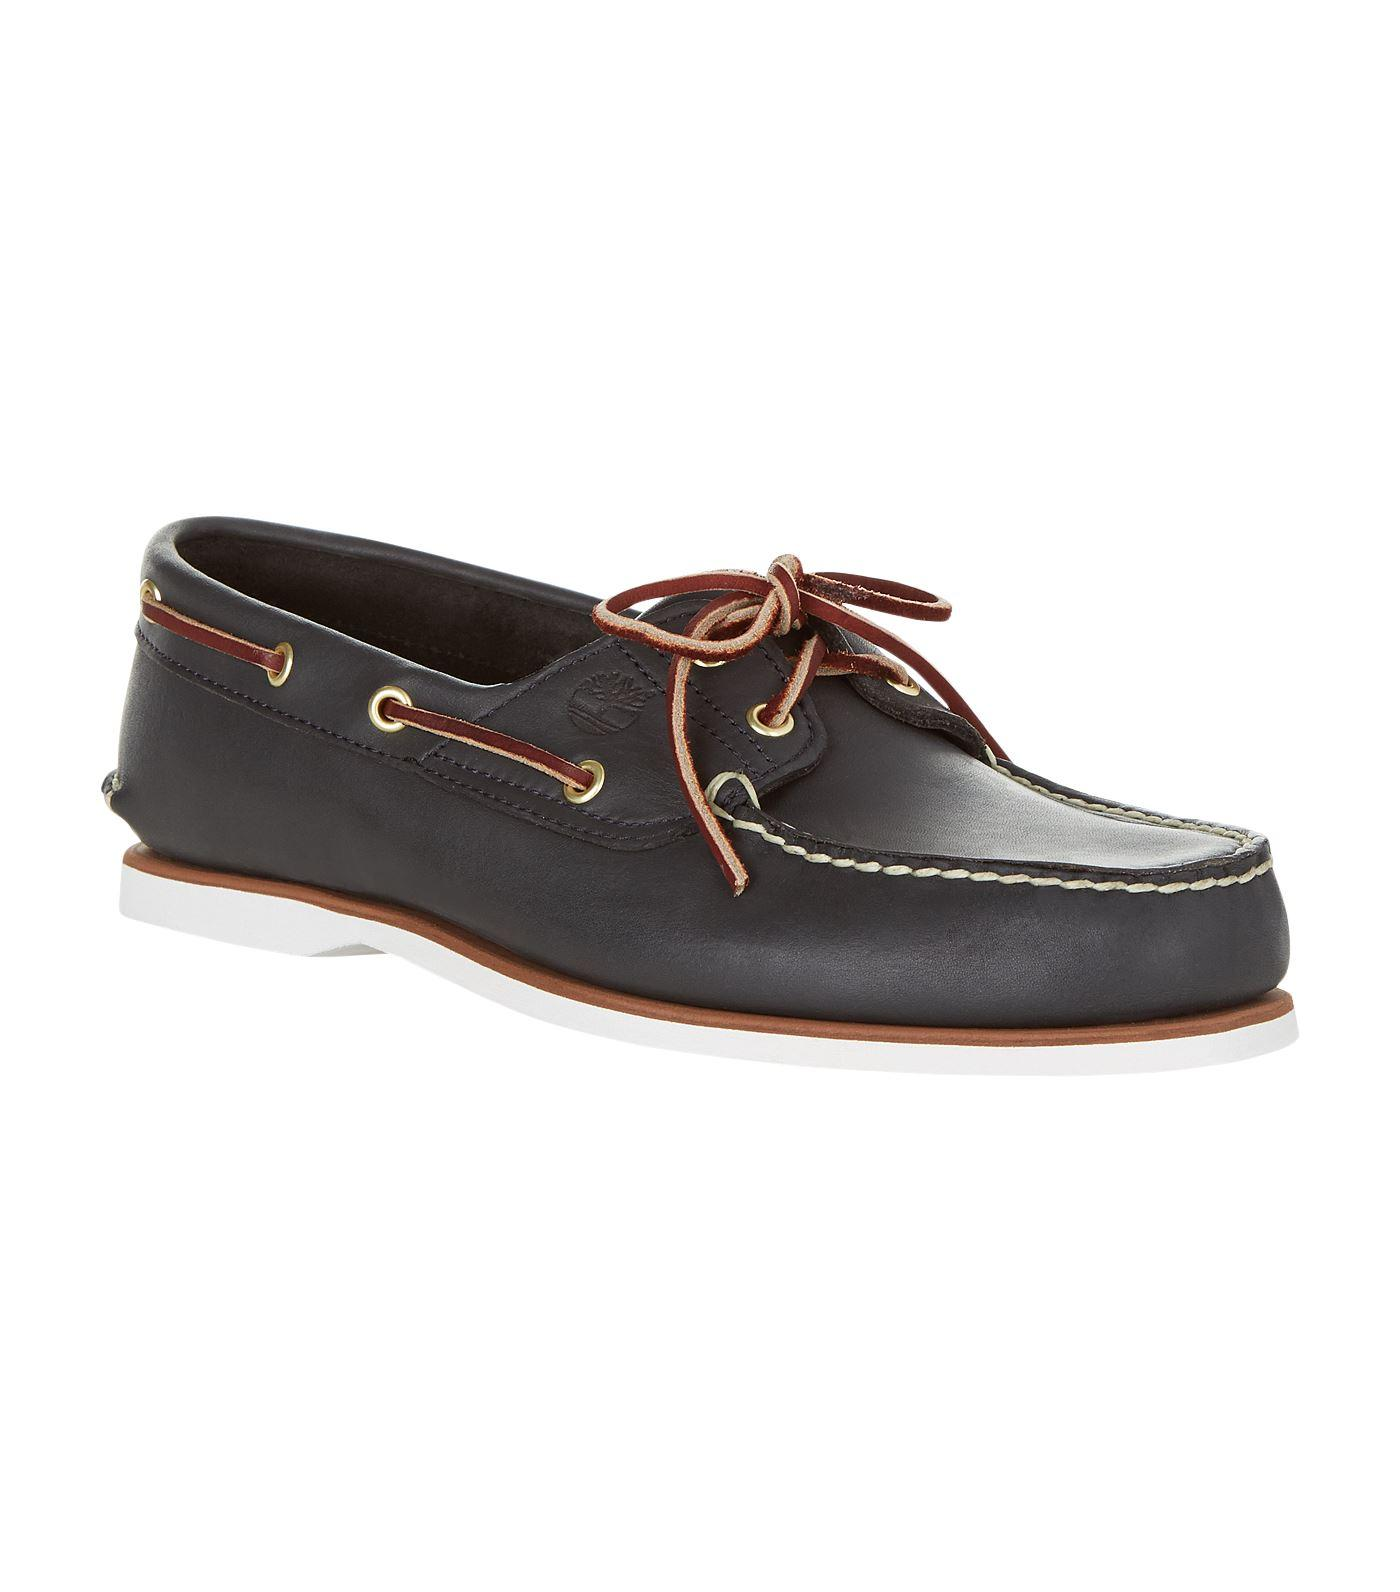 Smaller Size In A Boat Shoe